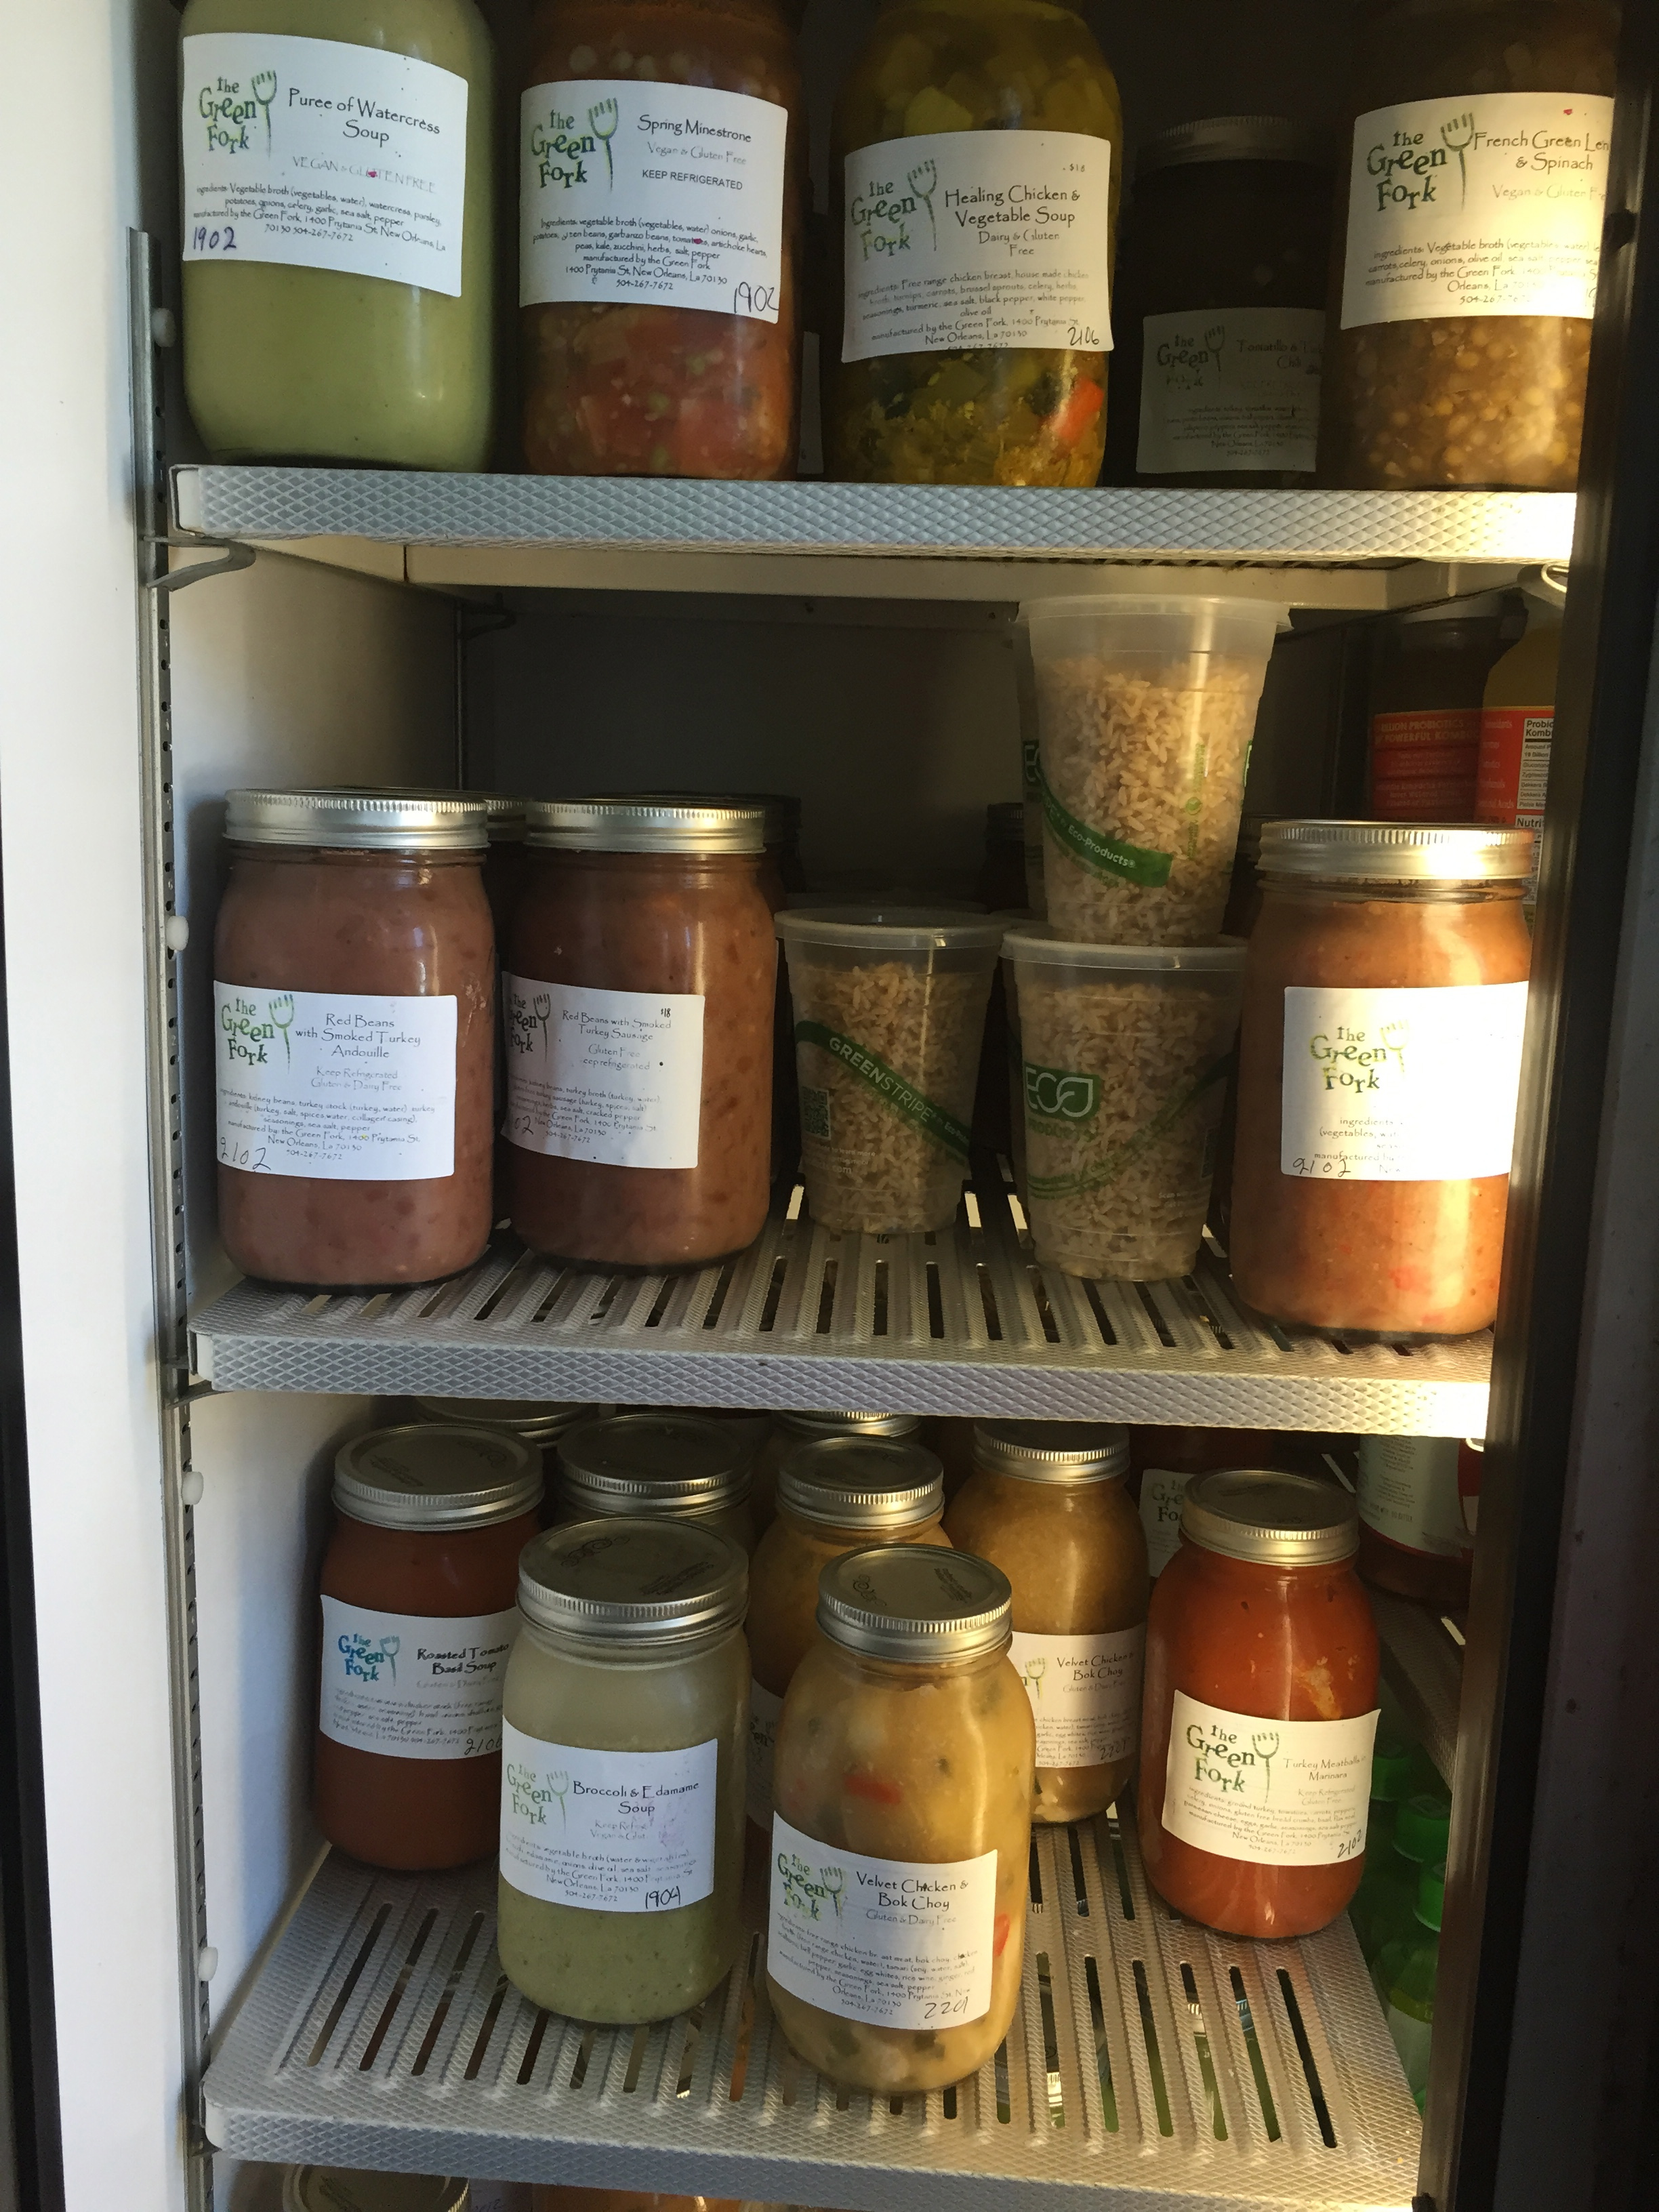 Soups from The Green Fork